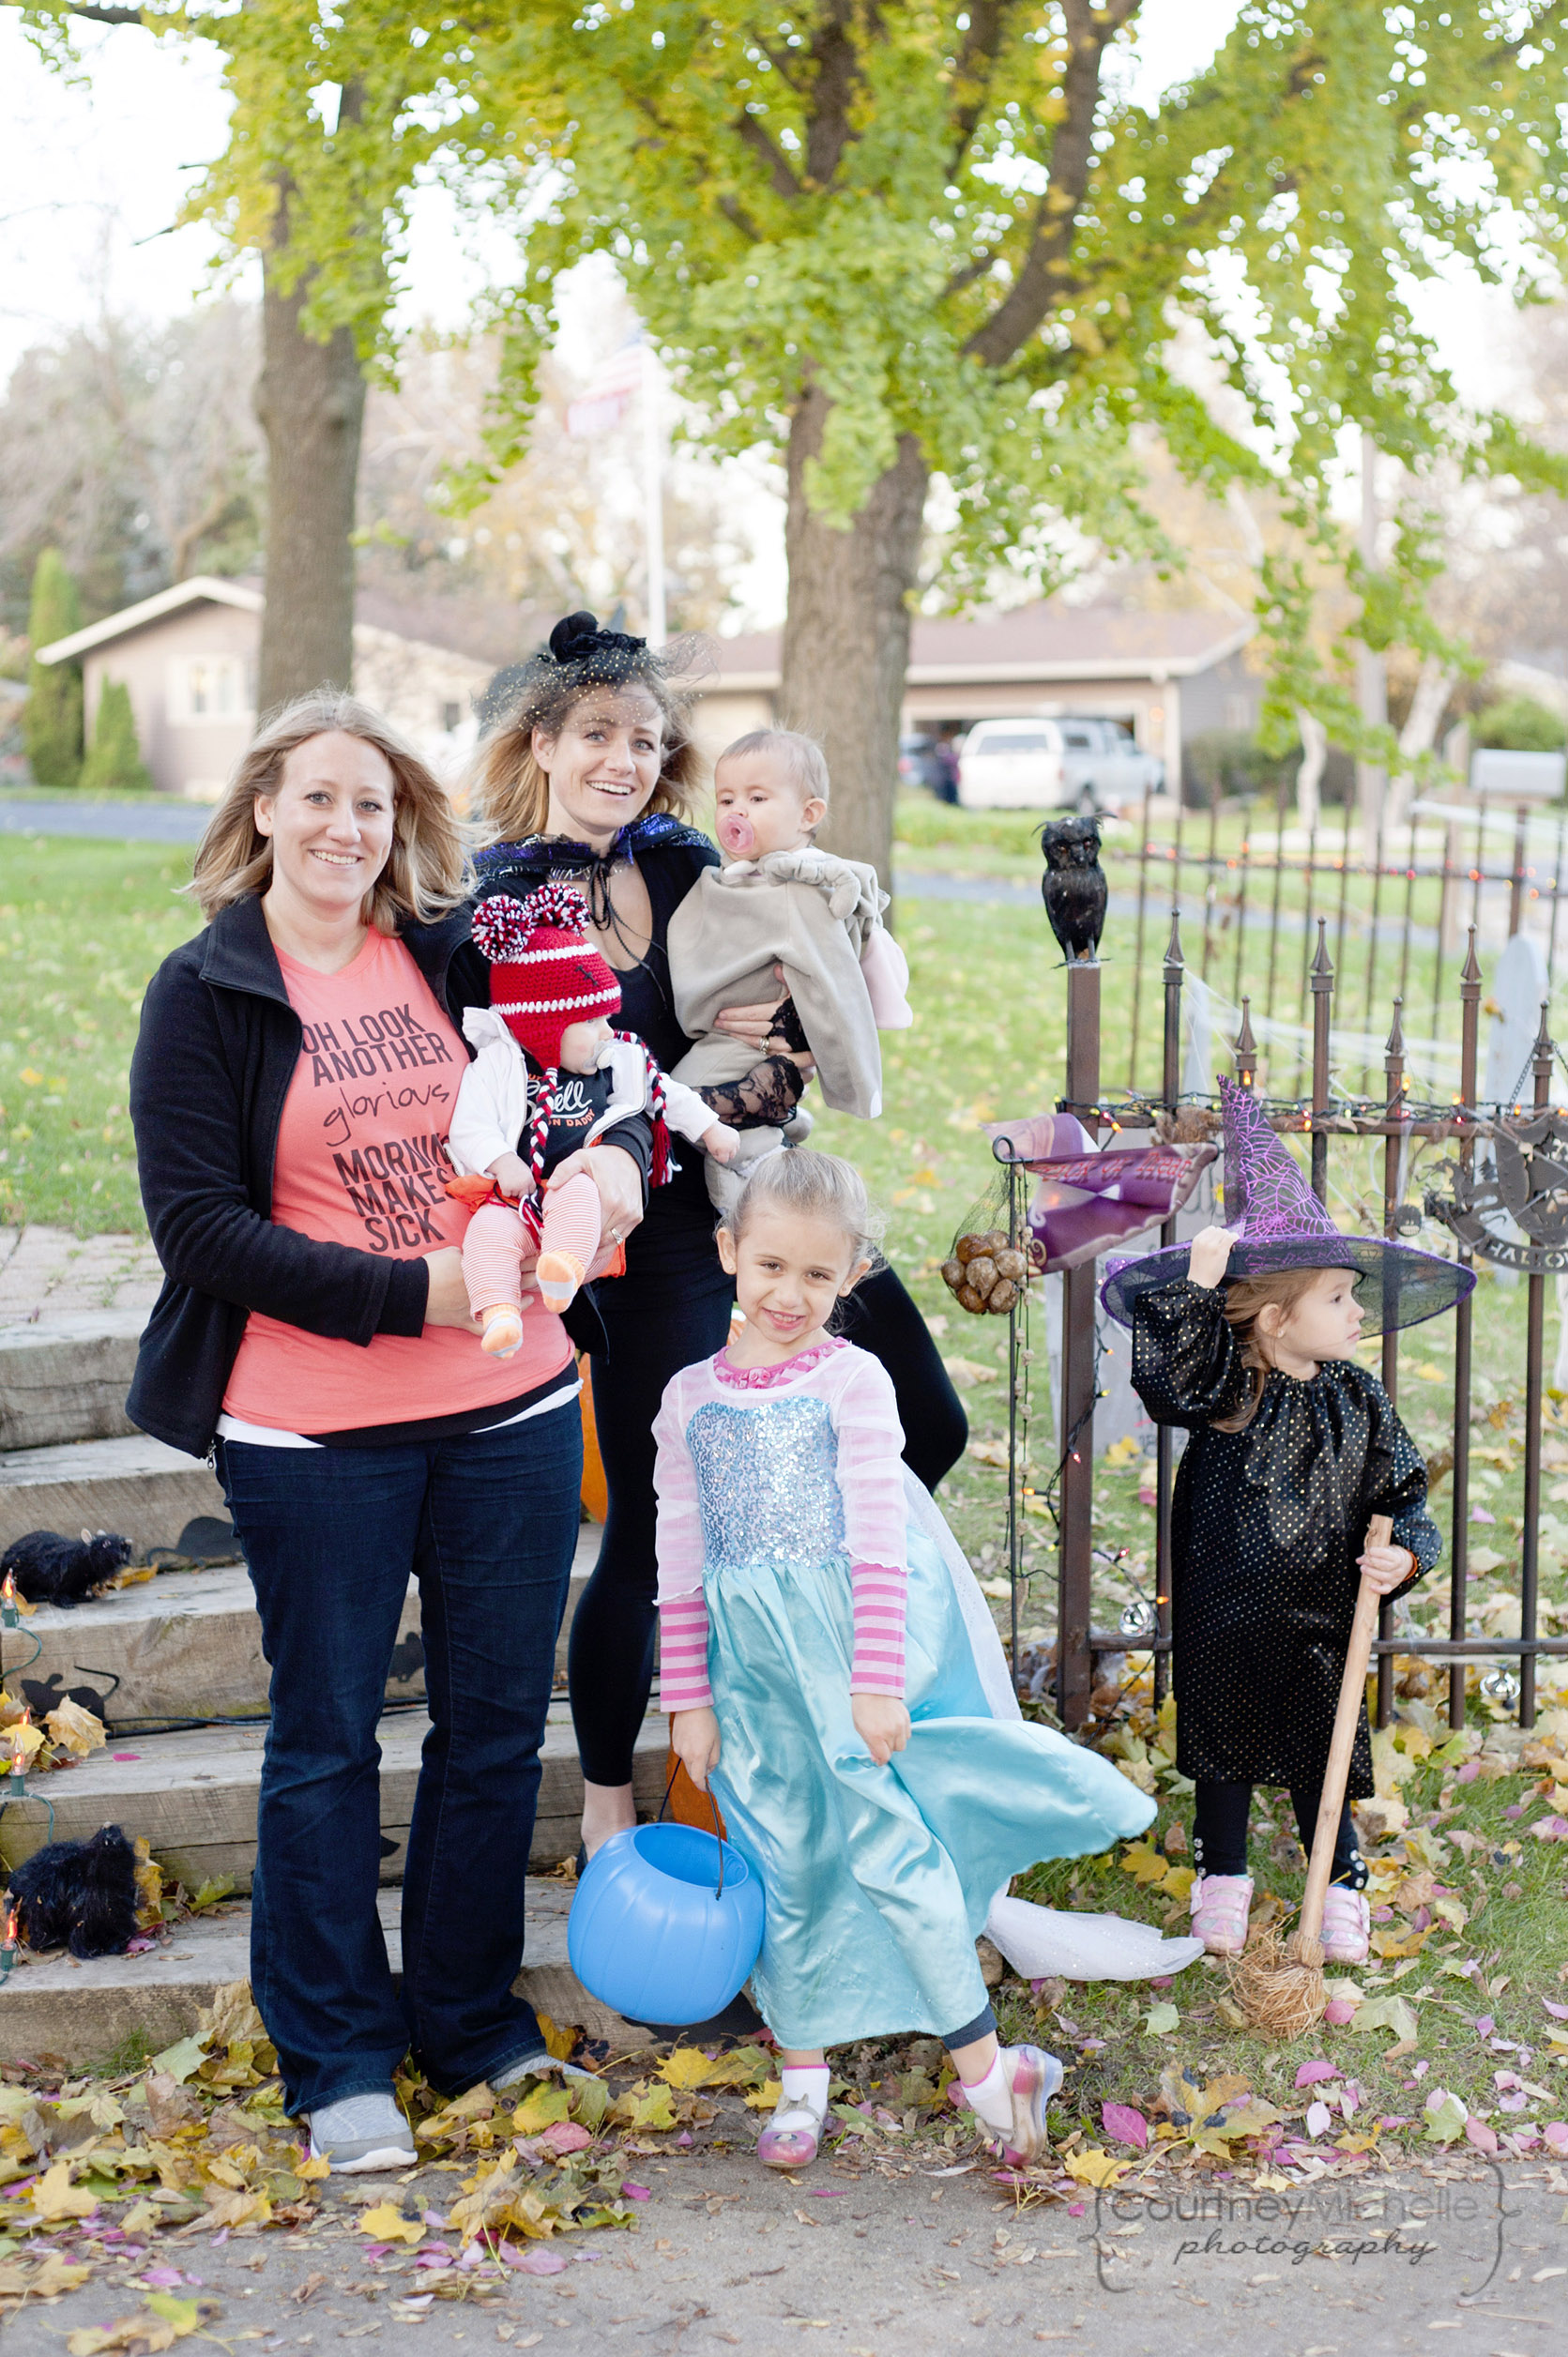 mom-and-daughters-in-halloween-costumes-lifestyle-photography-by-courtney-laper.jpg